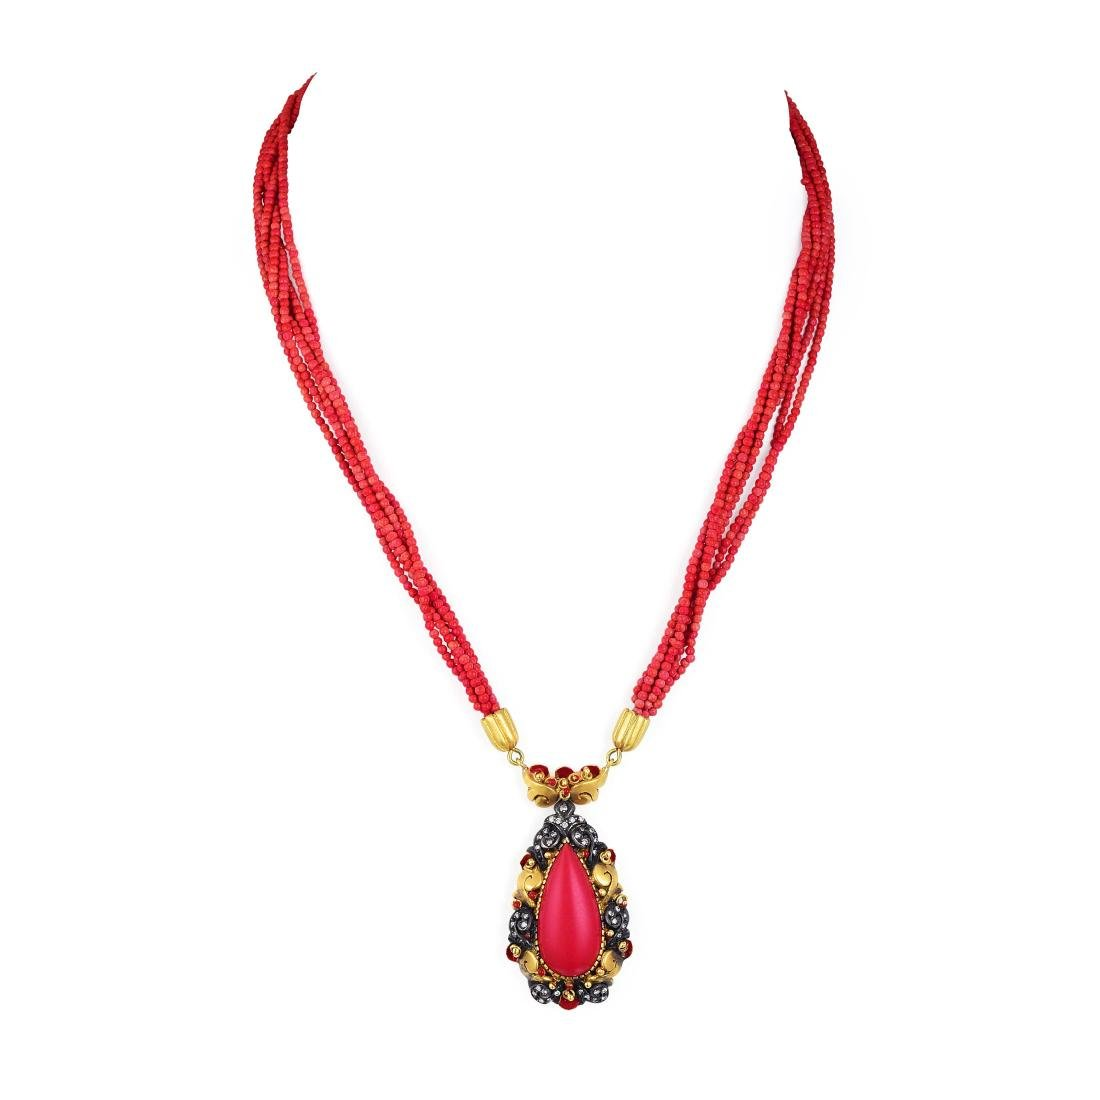 A Gold and Coral Pendant Necklace